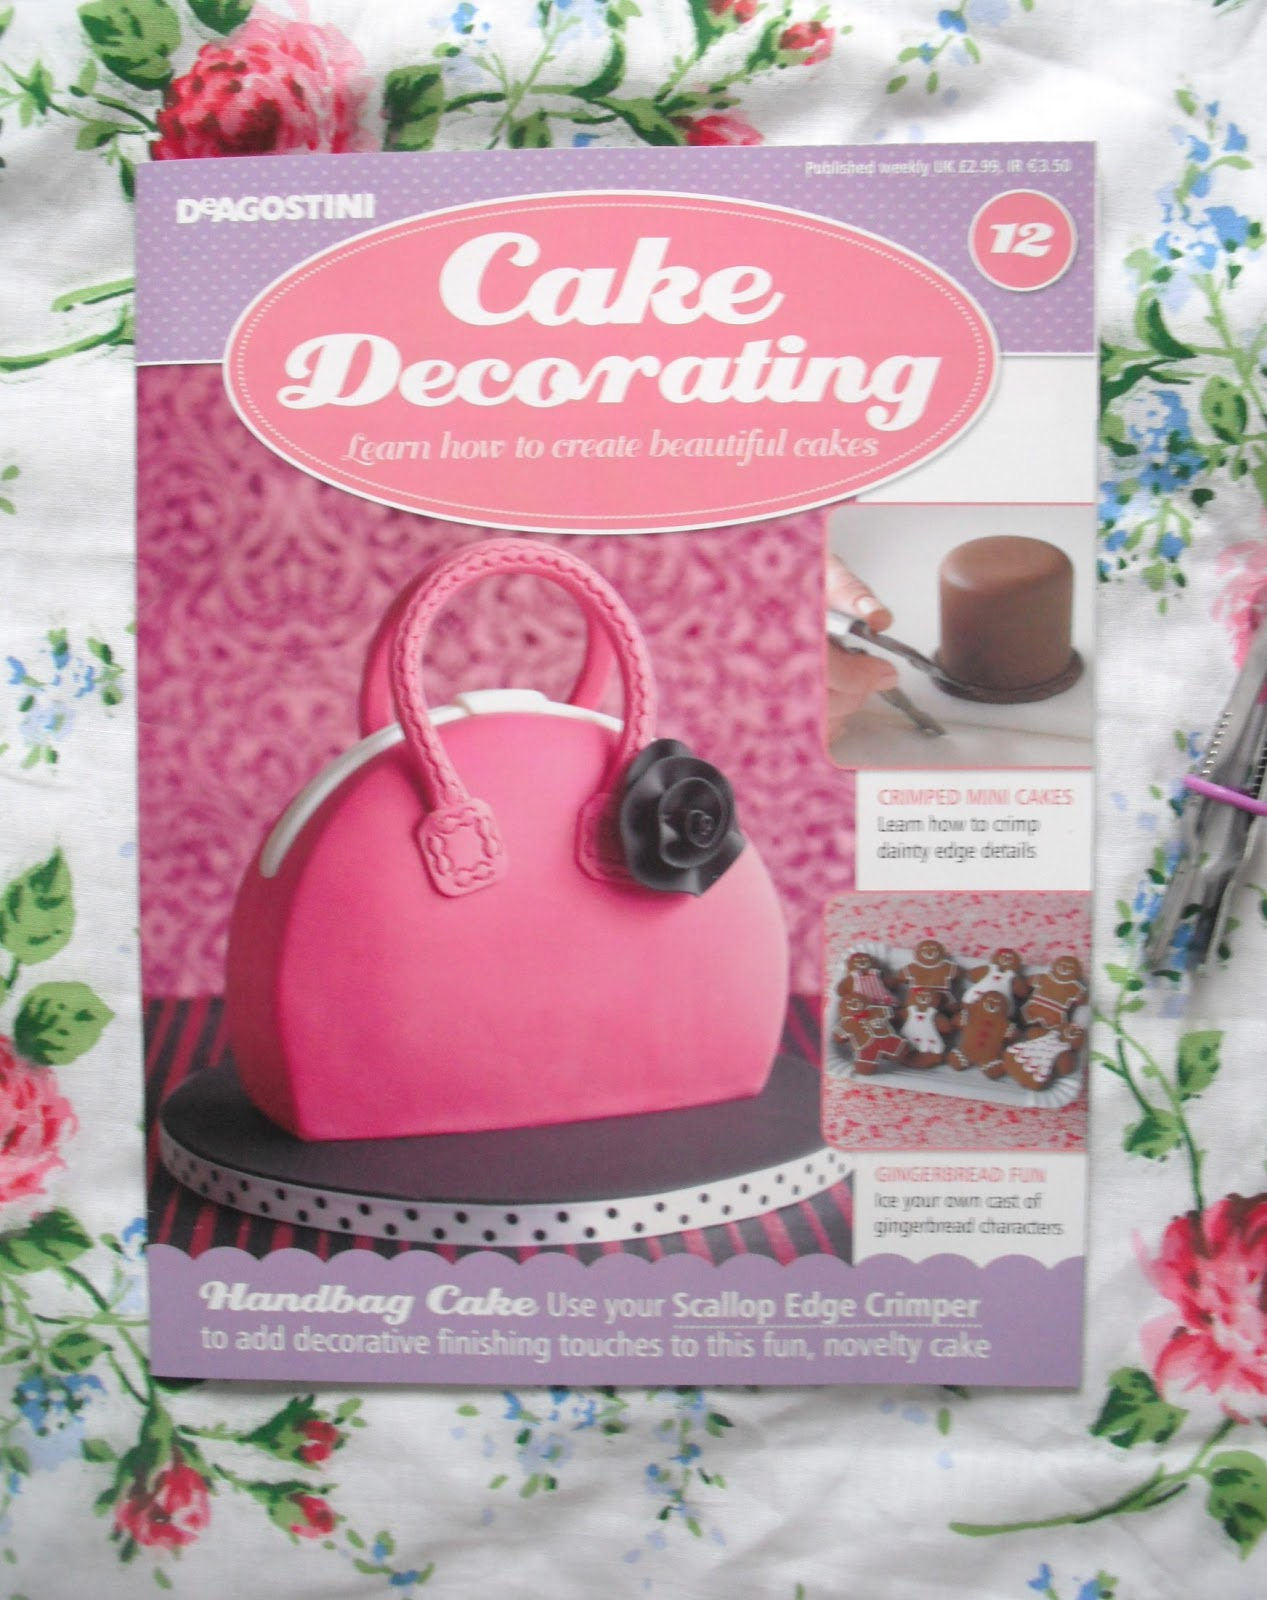 Cake Decorating Number Of Issues : Cake Decorating Magazine - Issue 12..   Victoria s ...